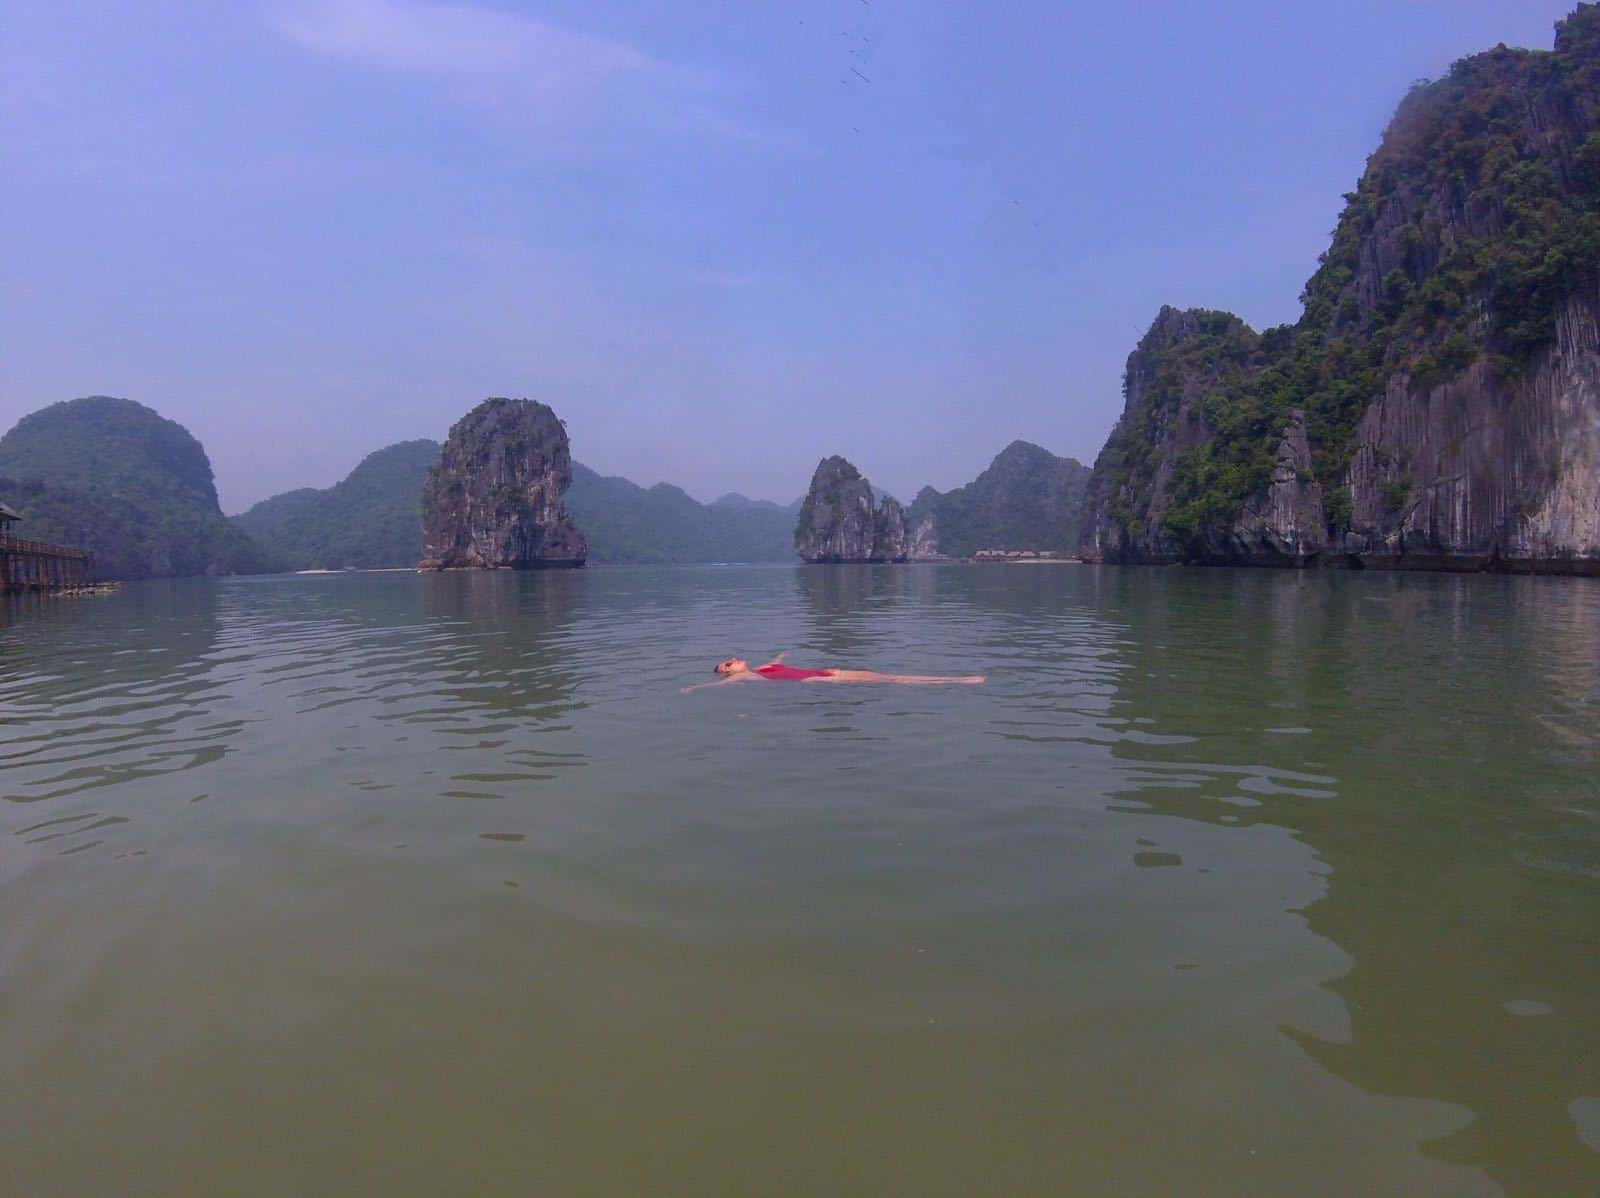 Swimming in the placid water of Halong Bay, Vietnam.